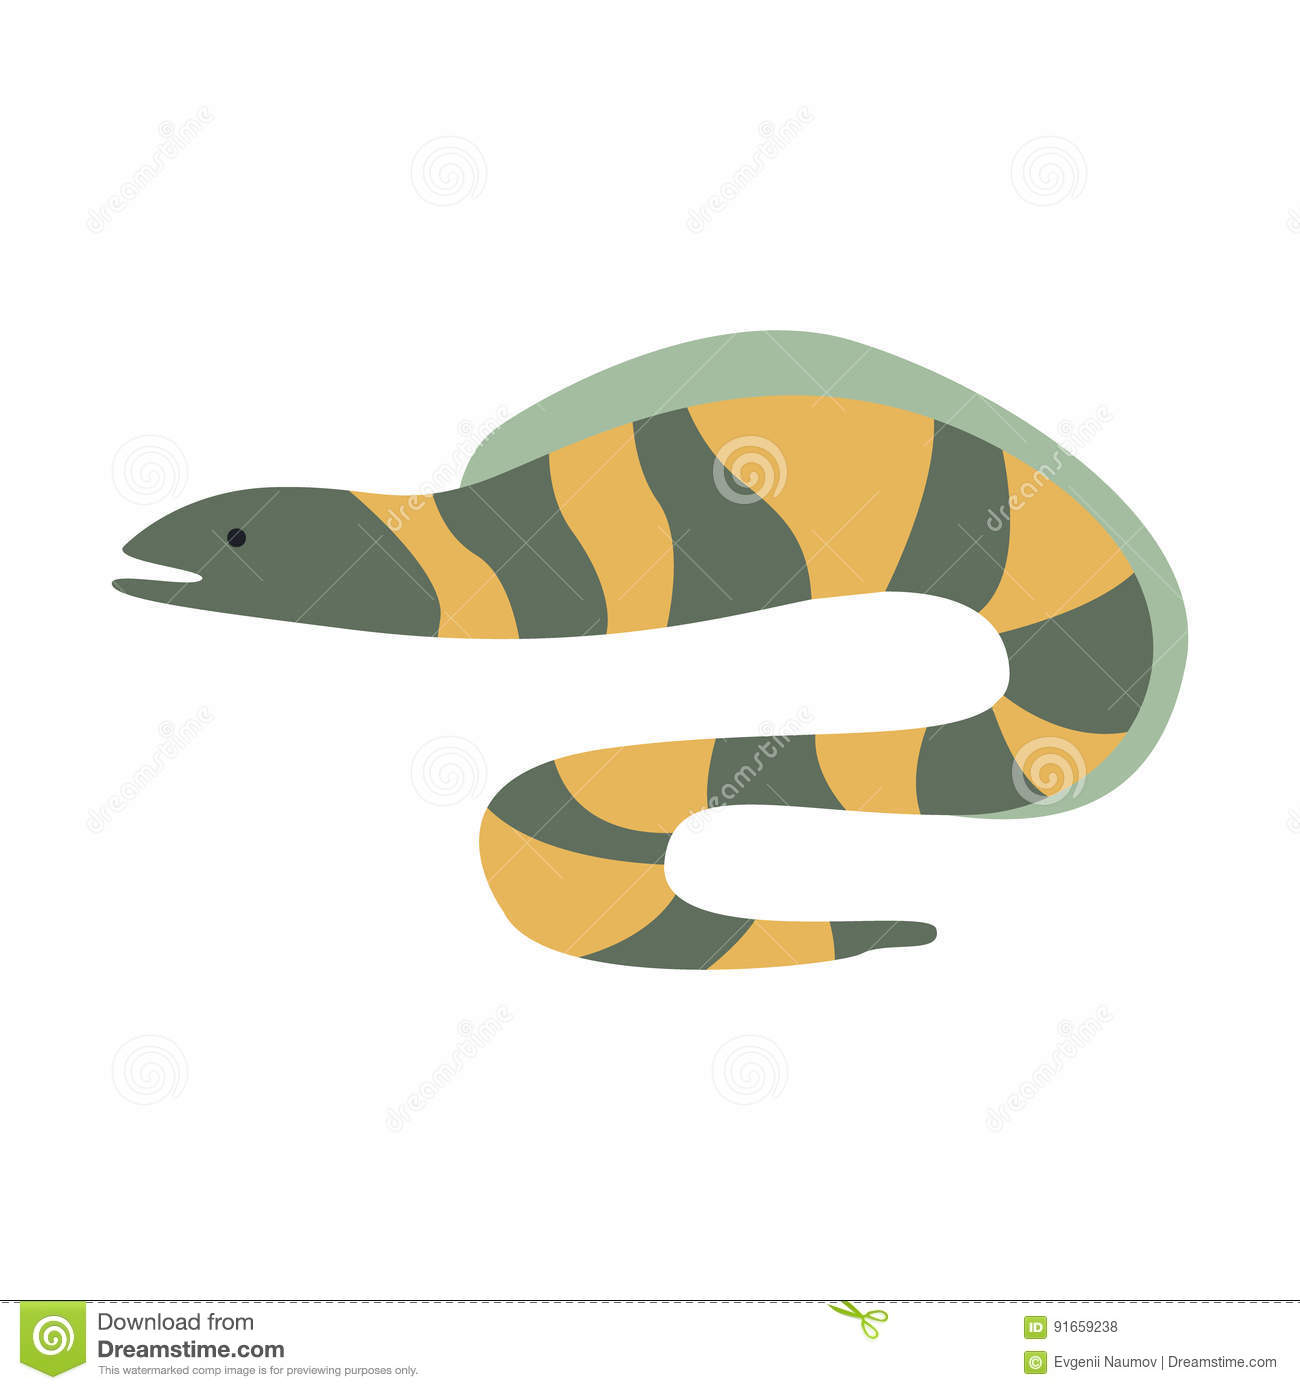 Grey And Yellow Stripy Moray-Paling, een Deel van de Illustratiesreeks van Marine Animals And Reef Life van de Middellandse Zee